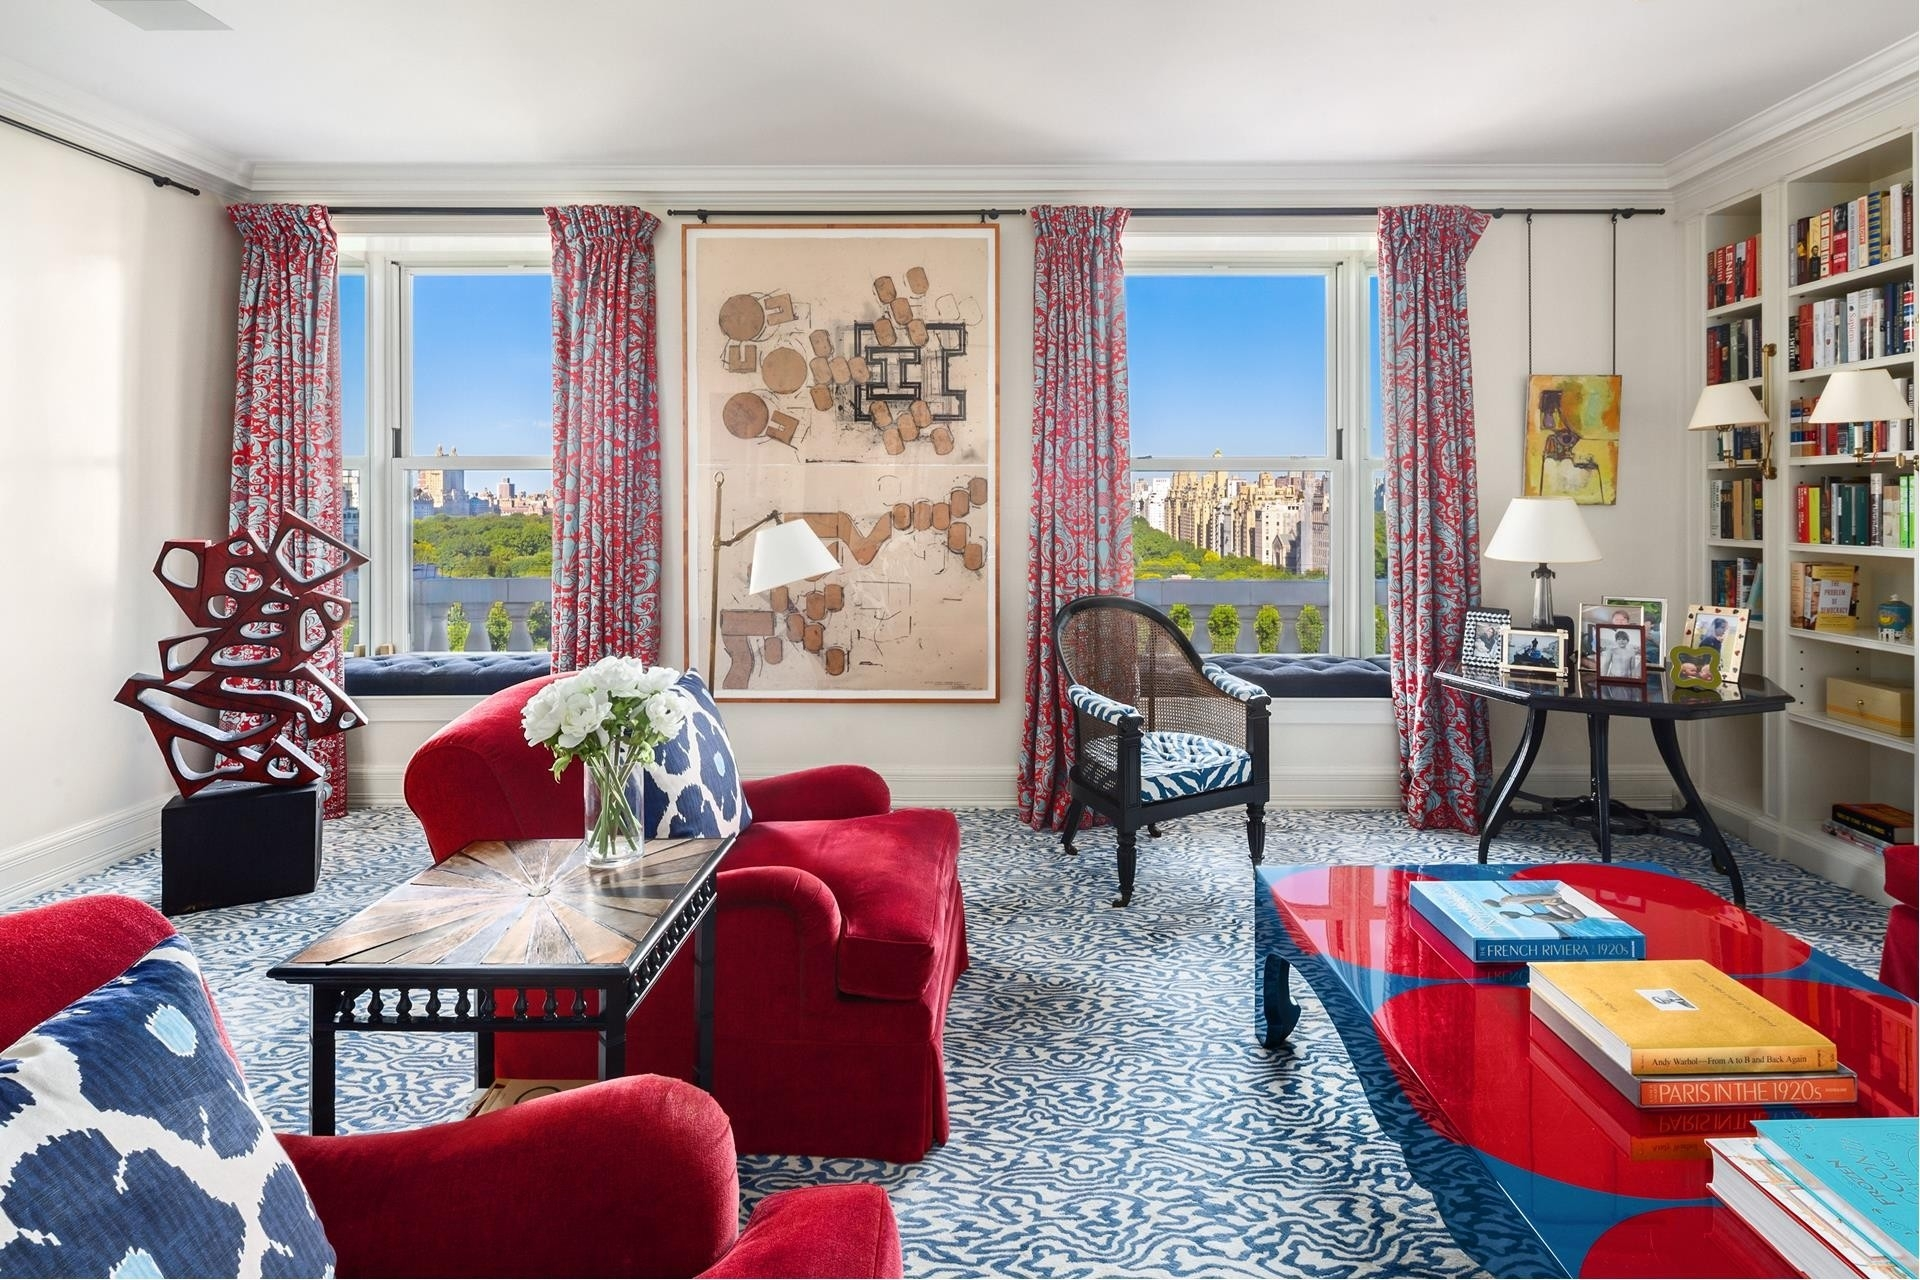 Condominium for Sale at The Plaza Residence, 1 CENTRAL PARK S, 1303 Central Park South, New York, NY 10019